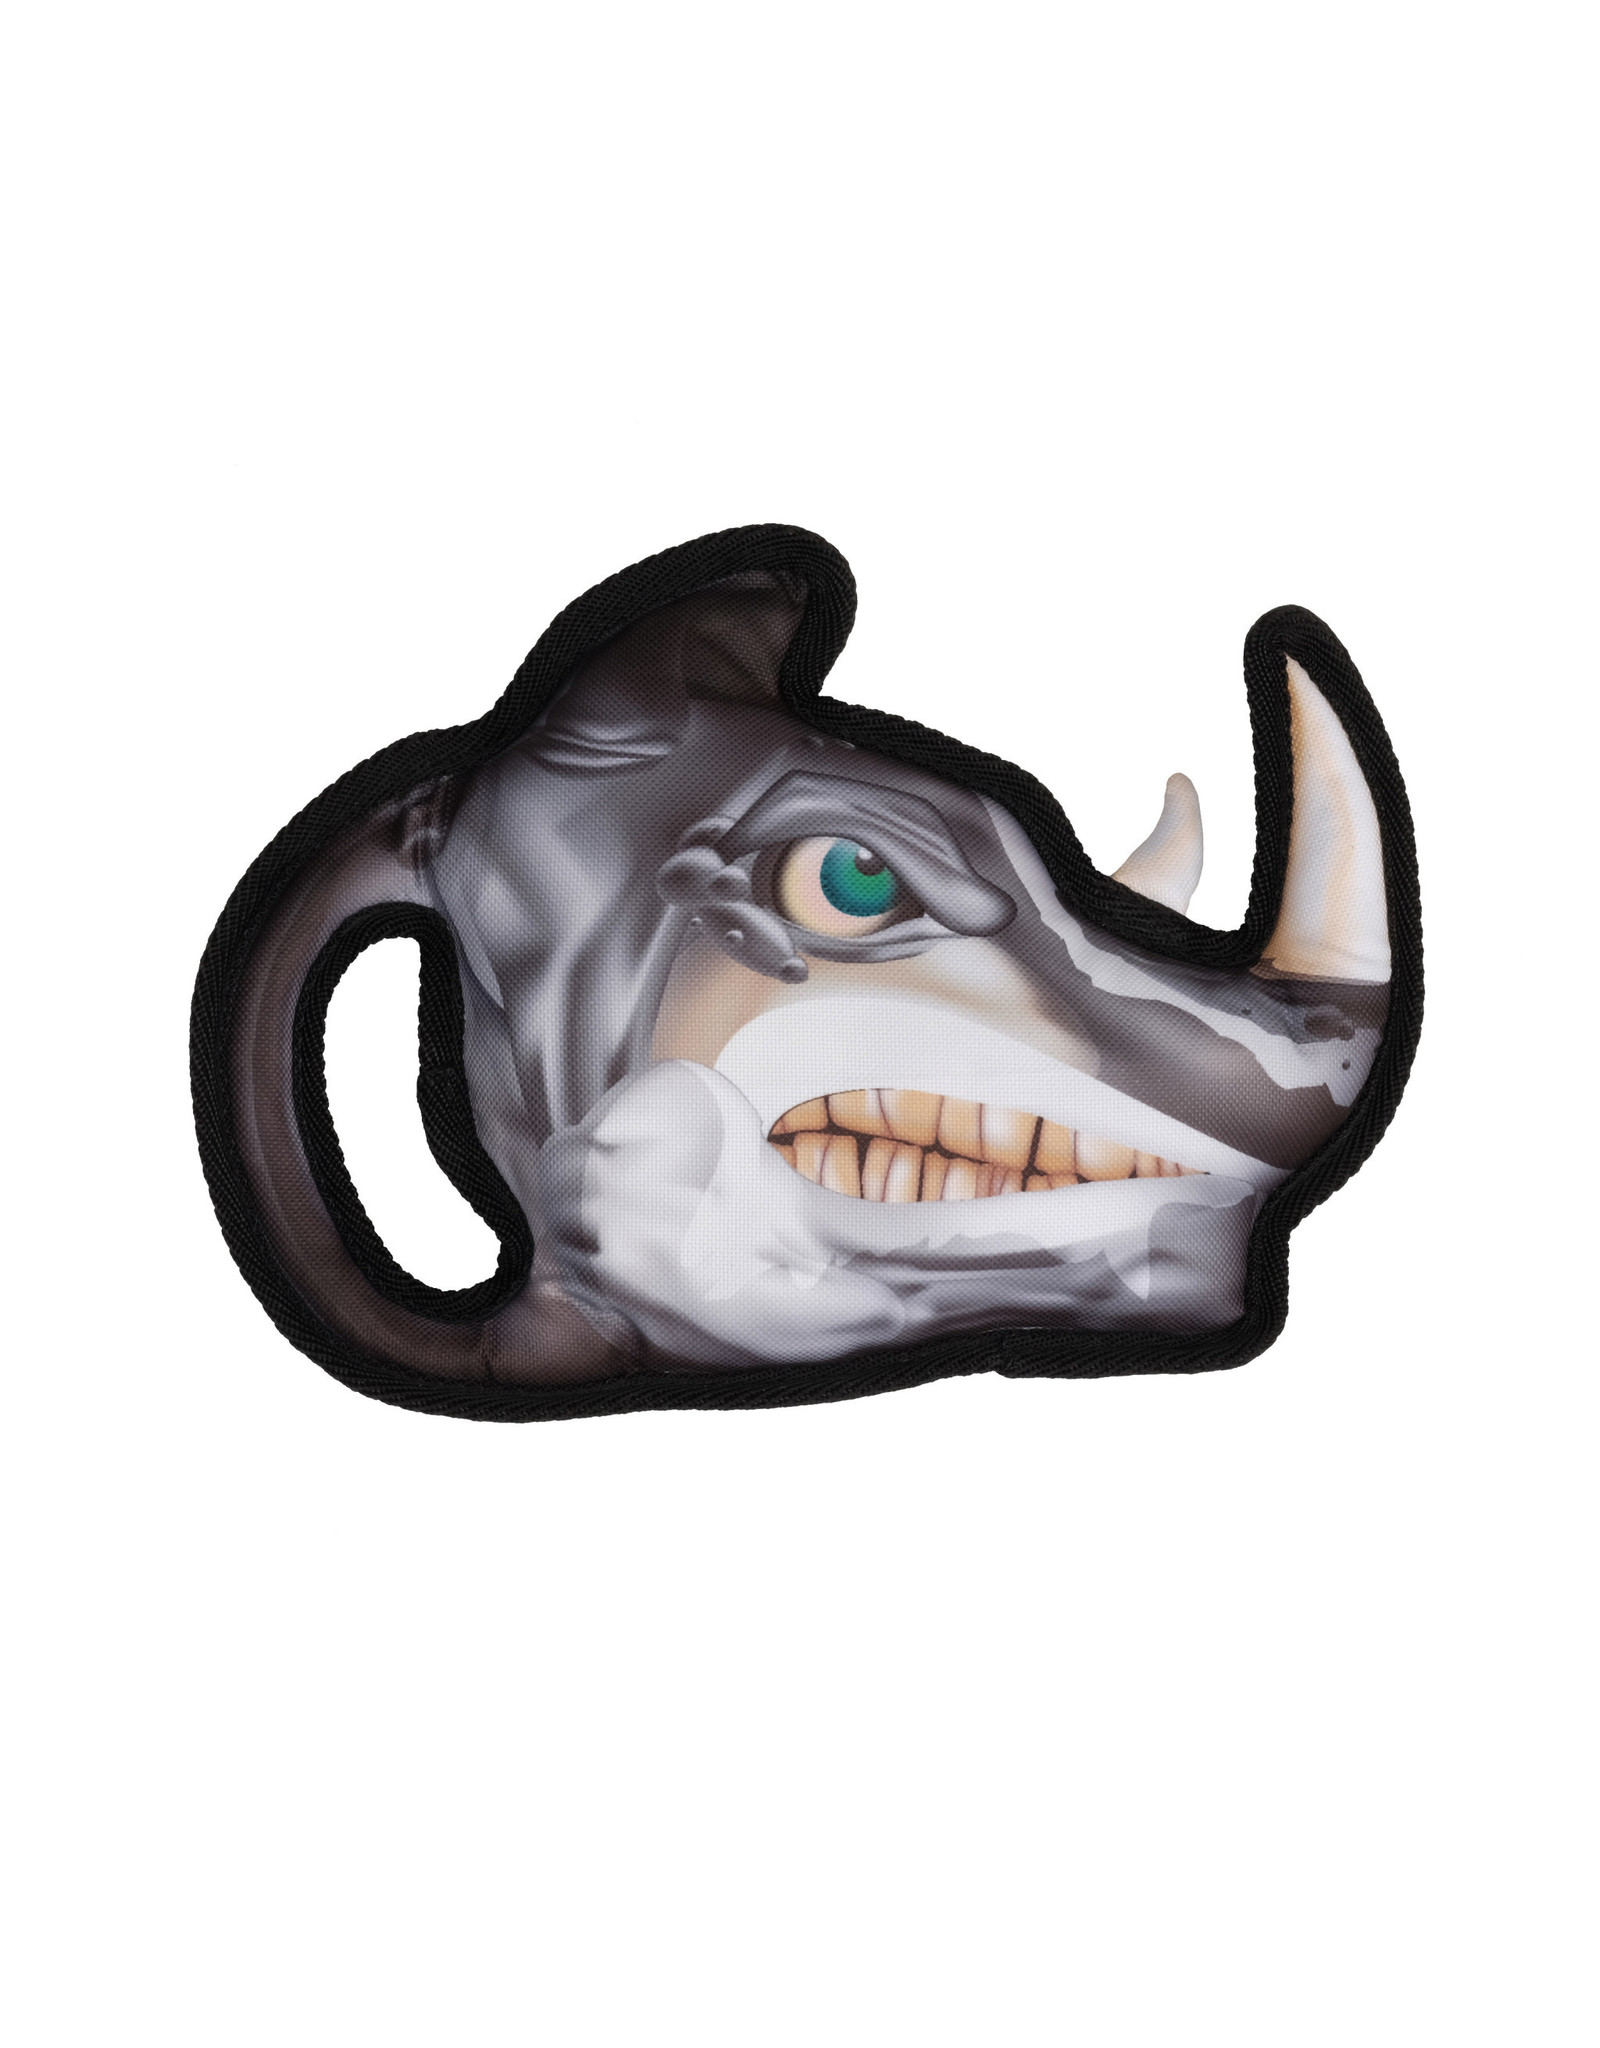 DogIt Growlers Dog Toy - Rhino - 26 cm x 19 cm (10.2 in x 7.4 in)